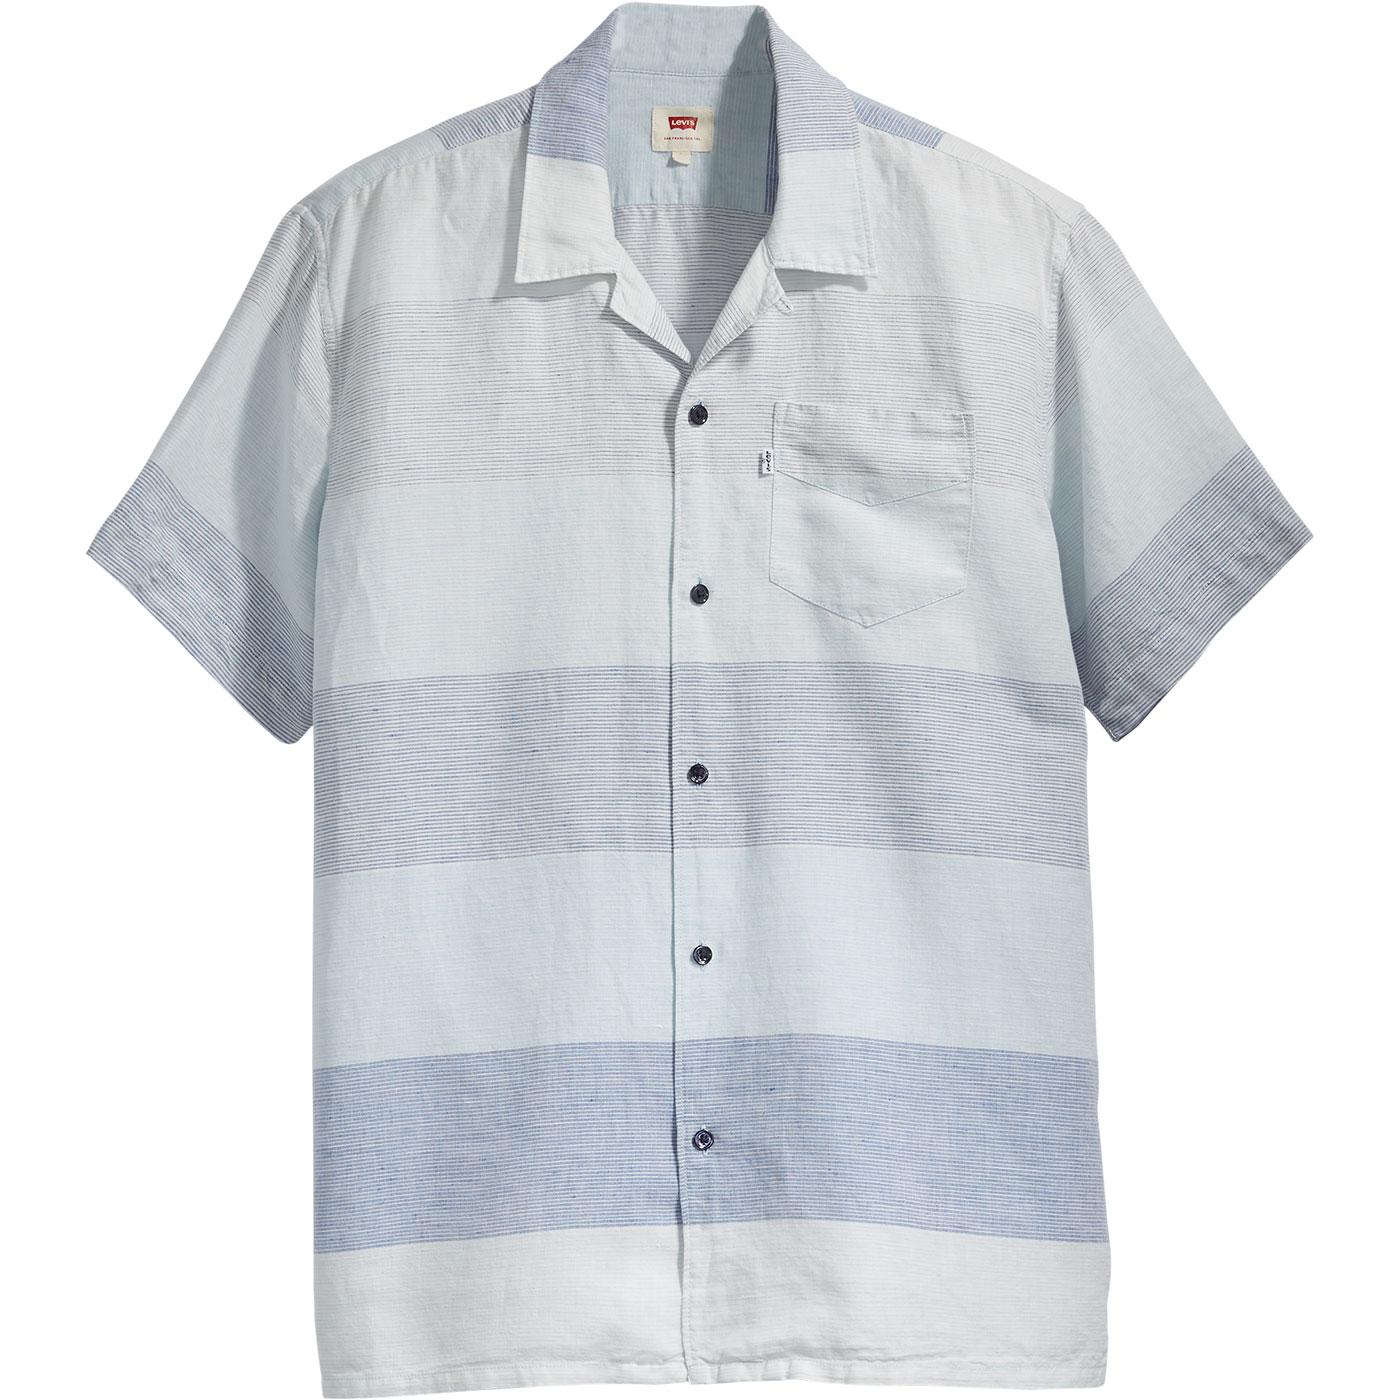 Cubano LEVI'S Retro 70s Cuban Collar Stripe Shirt